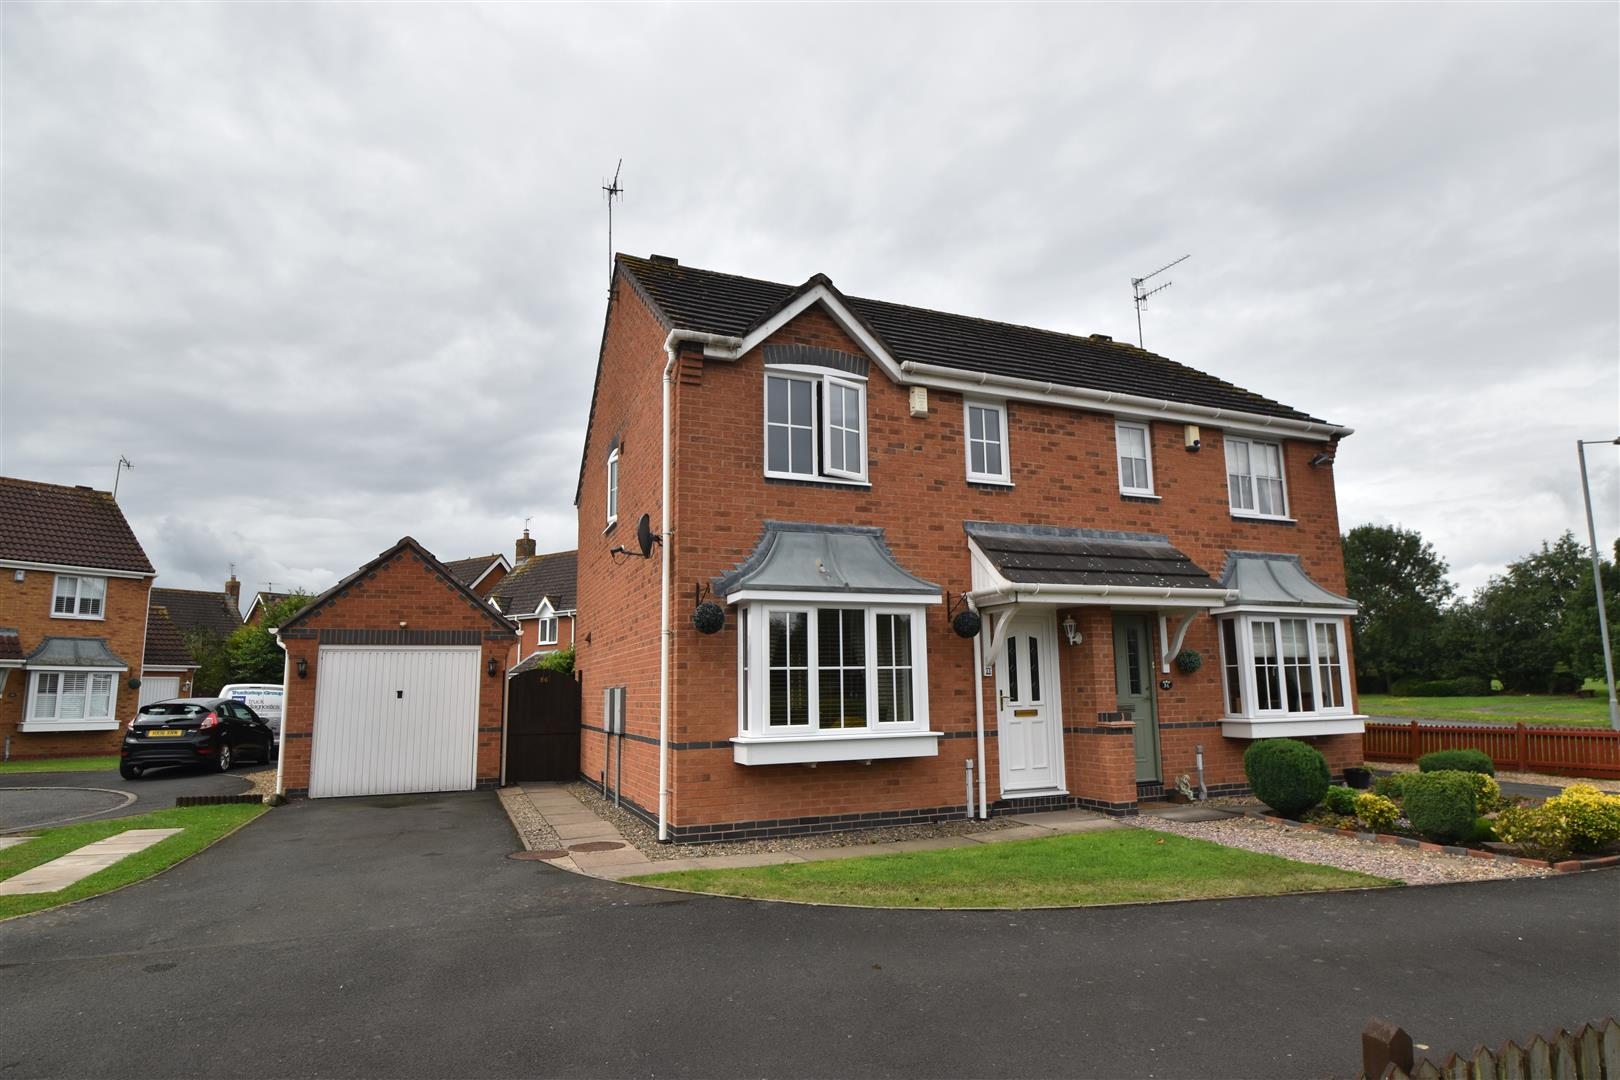 3 Bedrooms Semi Detached House for sale in Showell Green, Droitwich